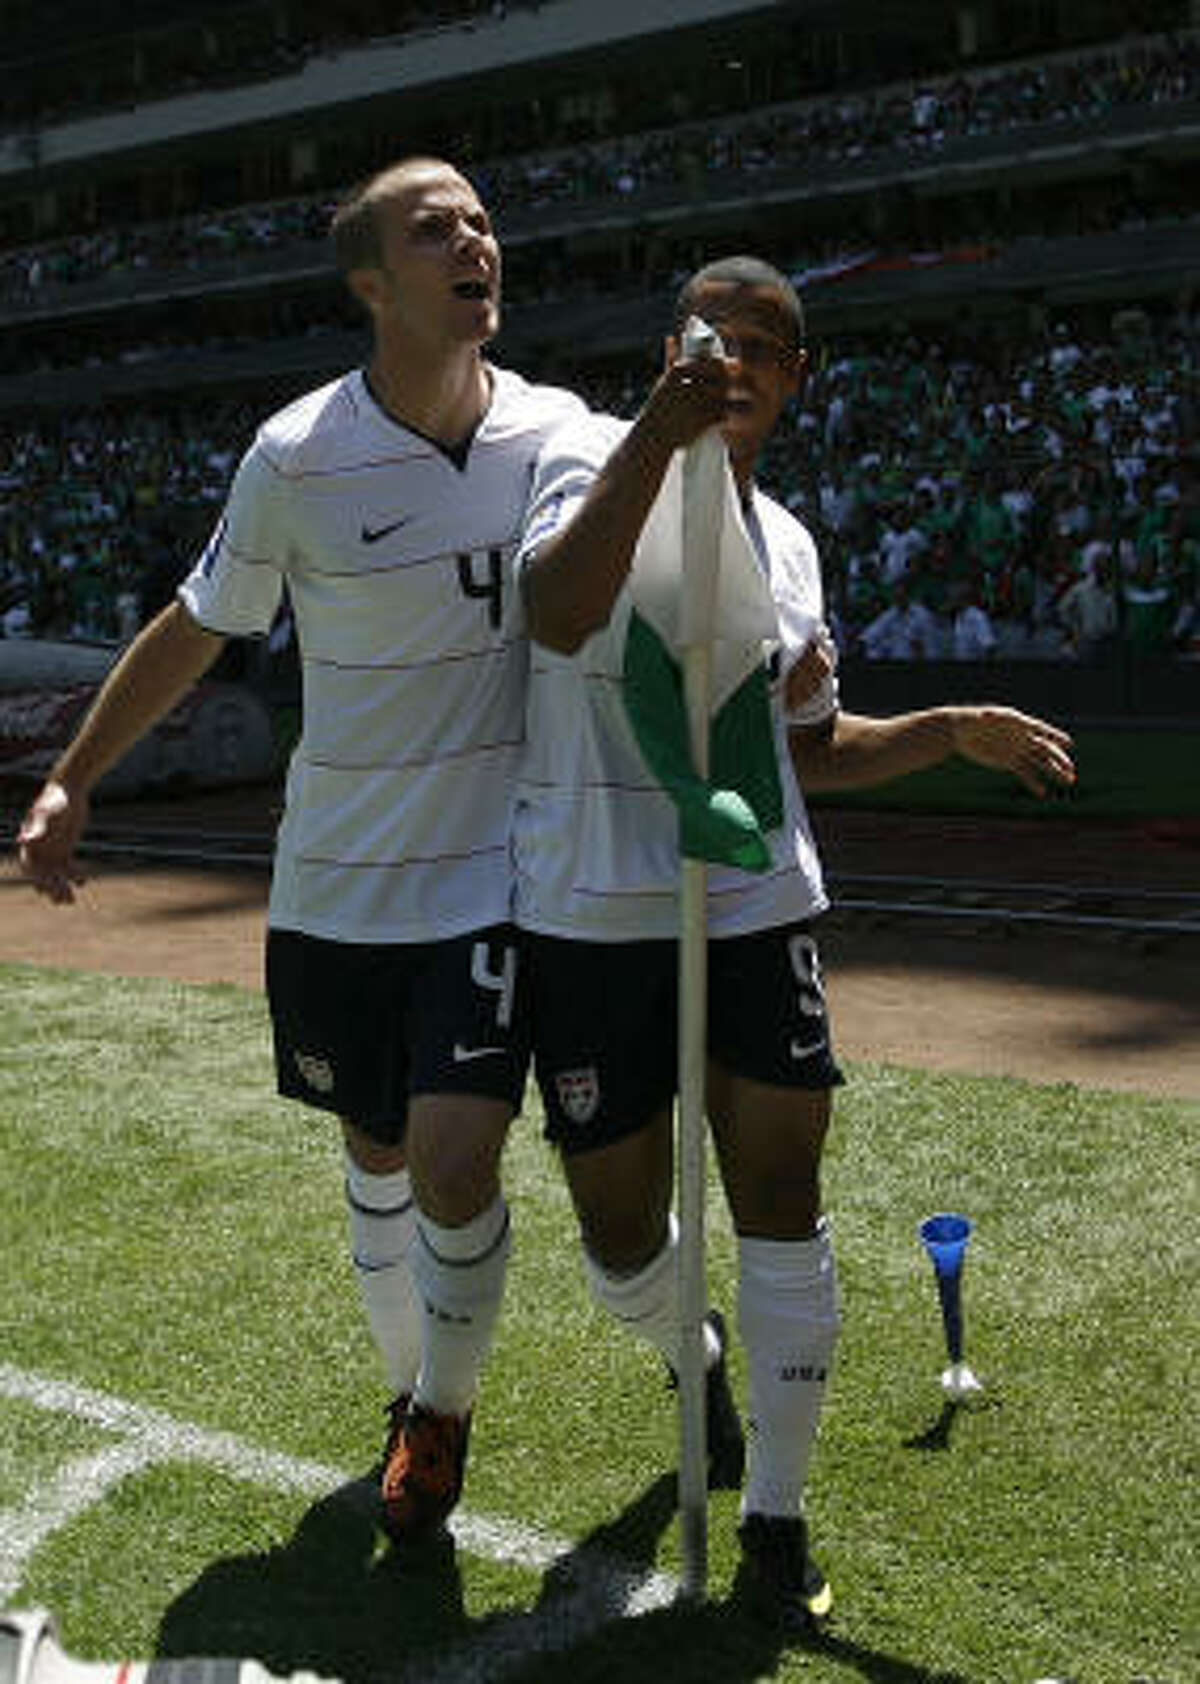 Charles Davies, right, and Michael Bradley of the U.S. celebrate after Davies scored against Mexico.